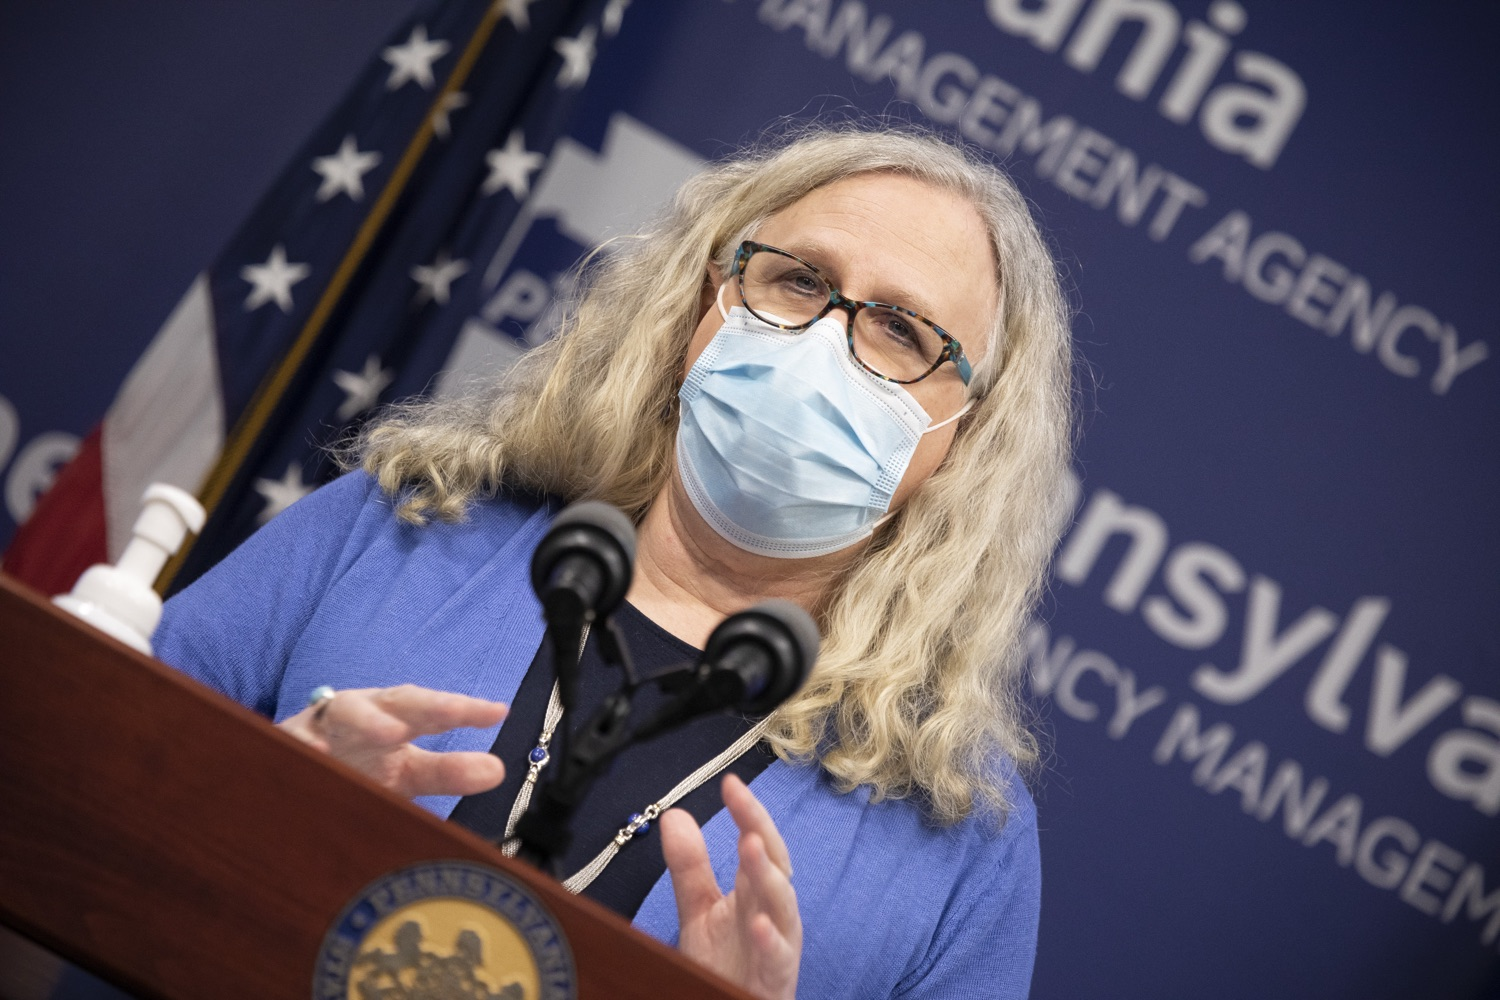 "<a href=""https://filesource.wostreaming.net/commonwealthofpa/photo/18405_gov_covidUpdate_dz_007.jpg"" target=""_blank"">⇣ Download Photo<br></a>Secretary of Health Dr. Rachel Levine speaking to the press.   With new modeling projecting 22,000 new COVID-19 cases per day in Pennsylvania in December, Governor Tom Wolf and Secretary of Health Dr. Rachel Levine today announced new targeted mitigation measures to help stop the spread during this critical time. These include a robust enforcement plan targeted at chronic violators along with an effort to ensure schools are safe and in compliance with COVID safety plans. The administration is also encouraging Pennsylvanians to limit unnecessary travel and stay at home.  Harrisburg, Pa. November 23, 2020"